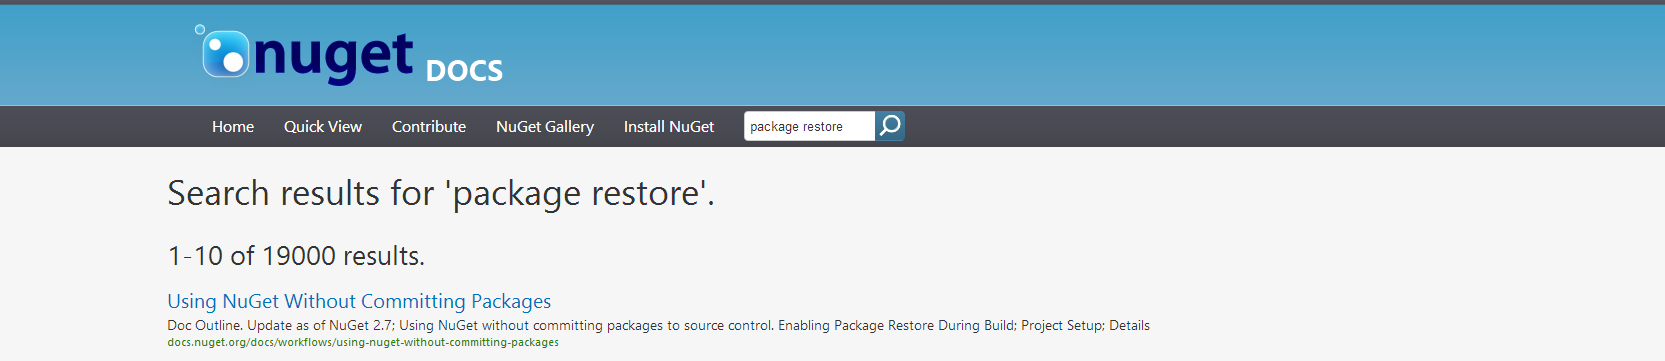 Migrate away from MSBuild-based NuGet package restore - Xavier Decoster